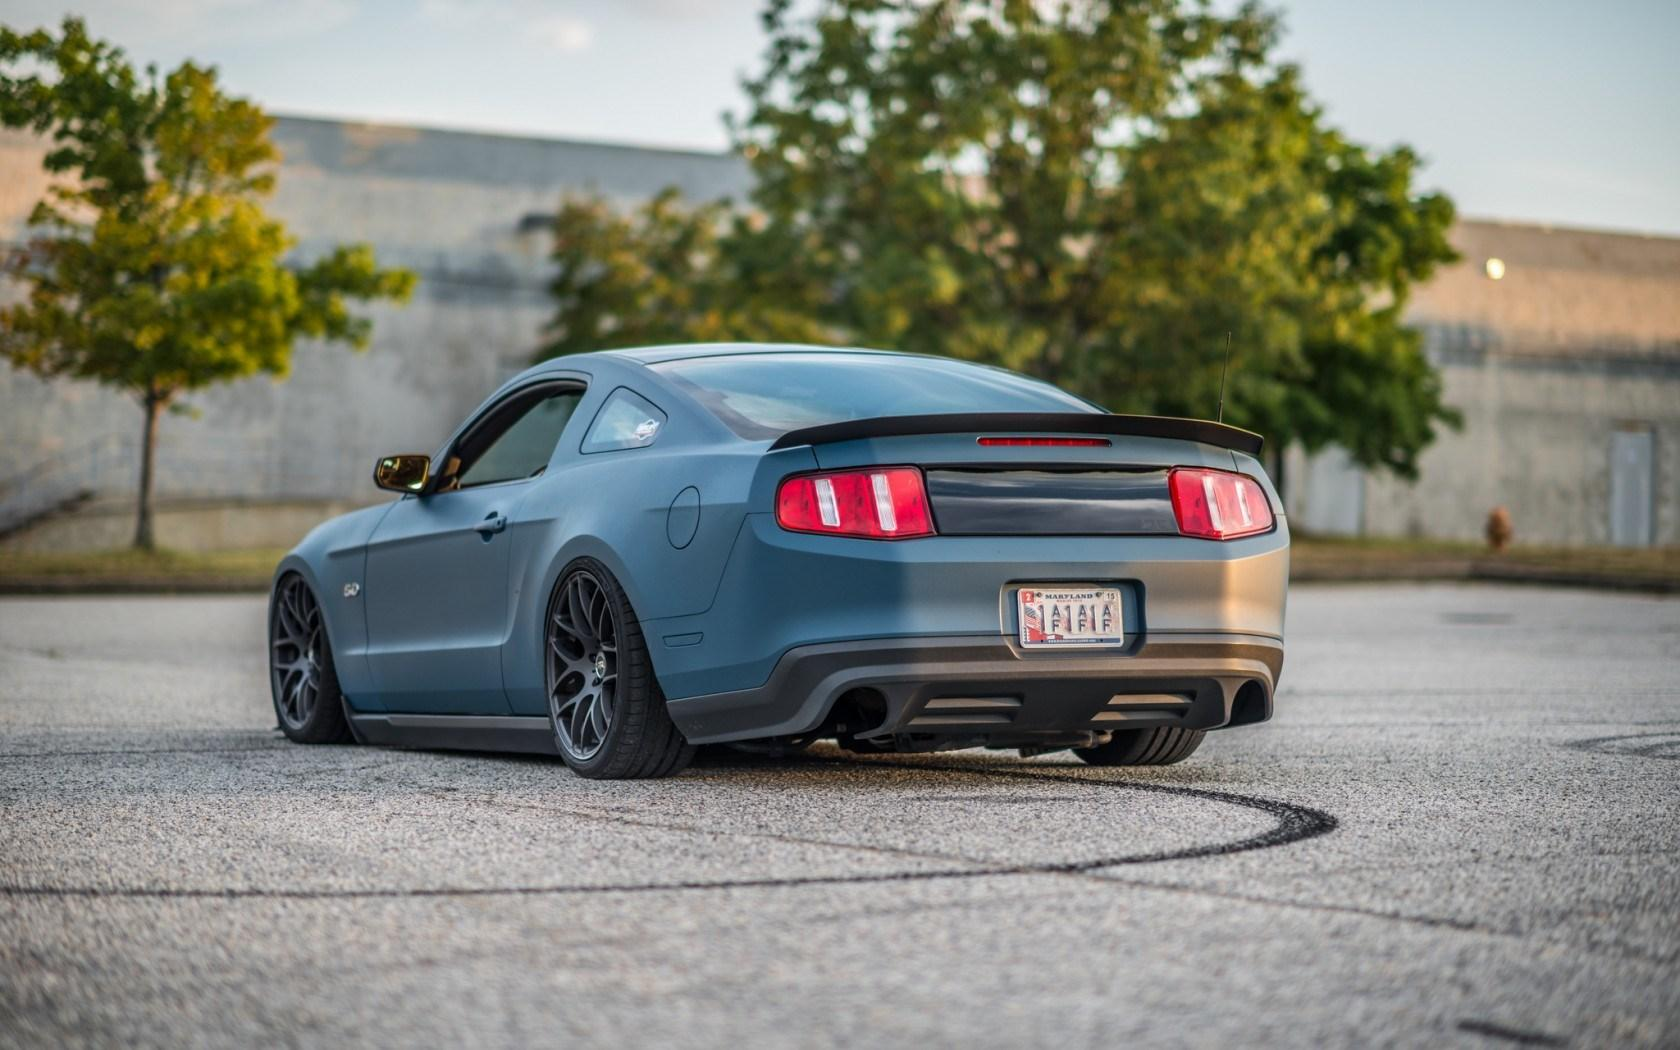 Ford Mustang Tuning Car Rear Wallpaper  Other  Wallpaper